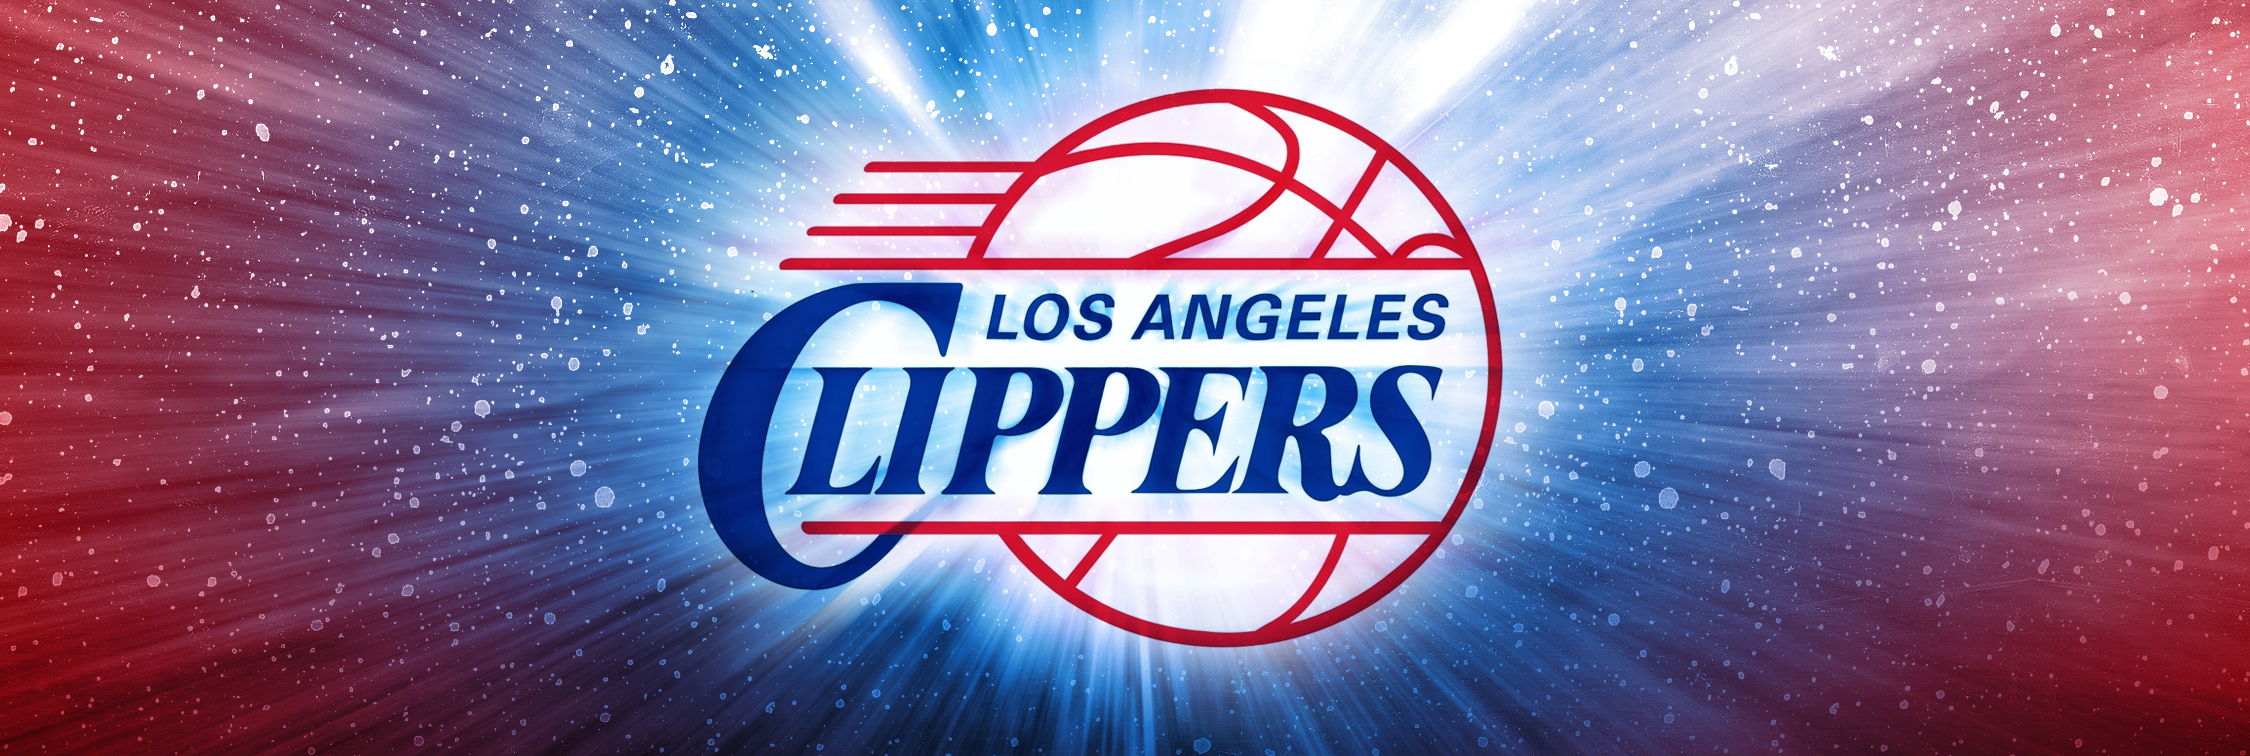 LAClippers.jpg